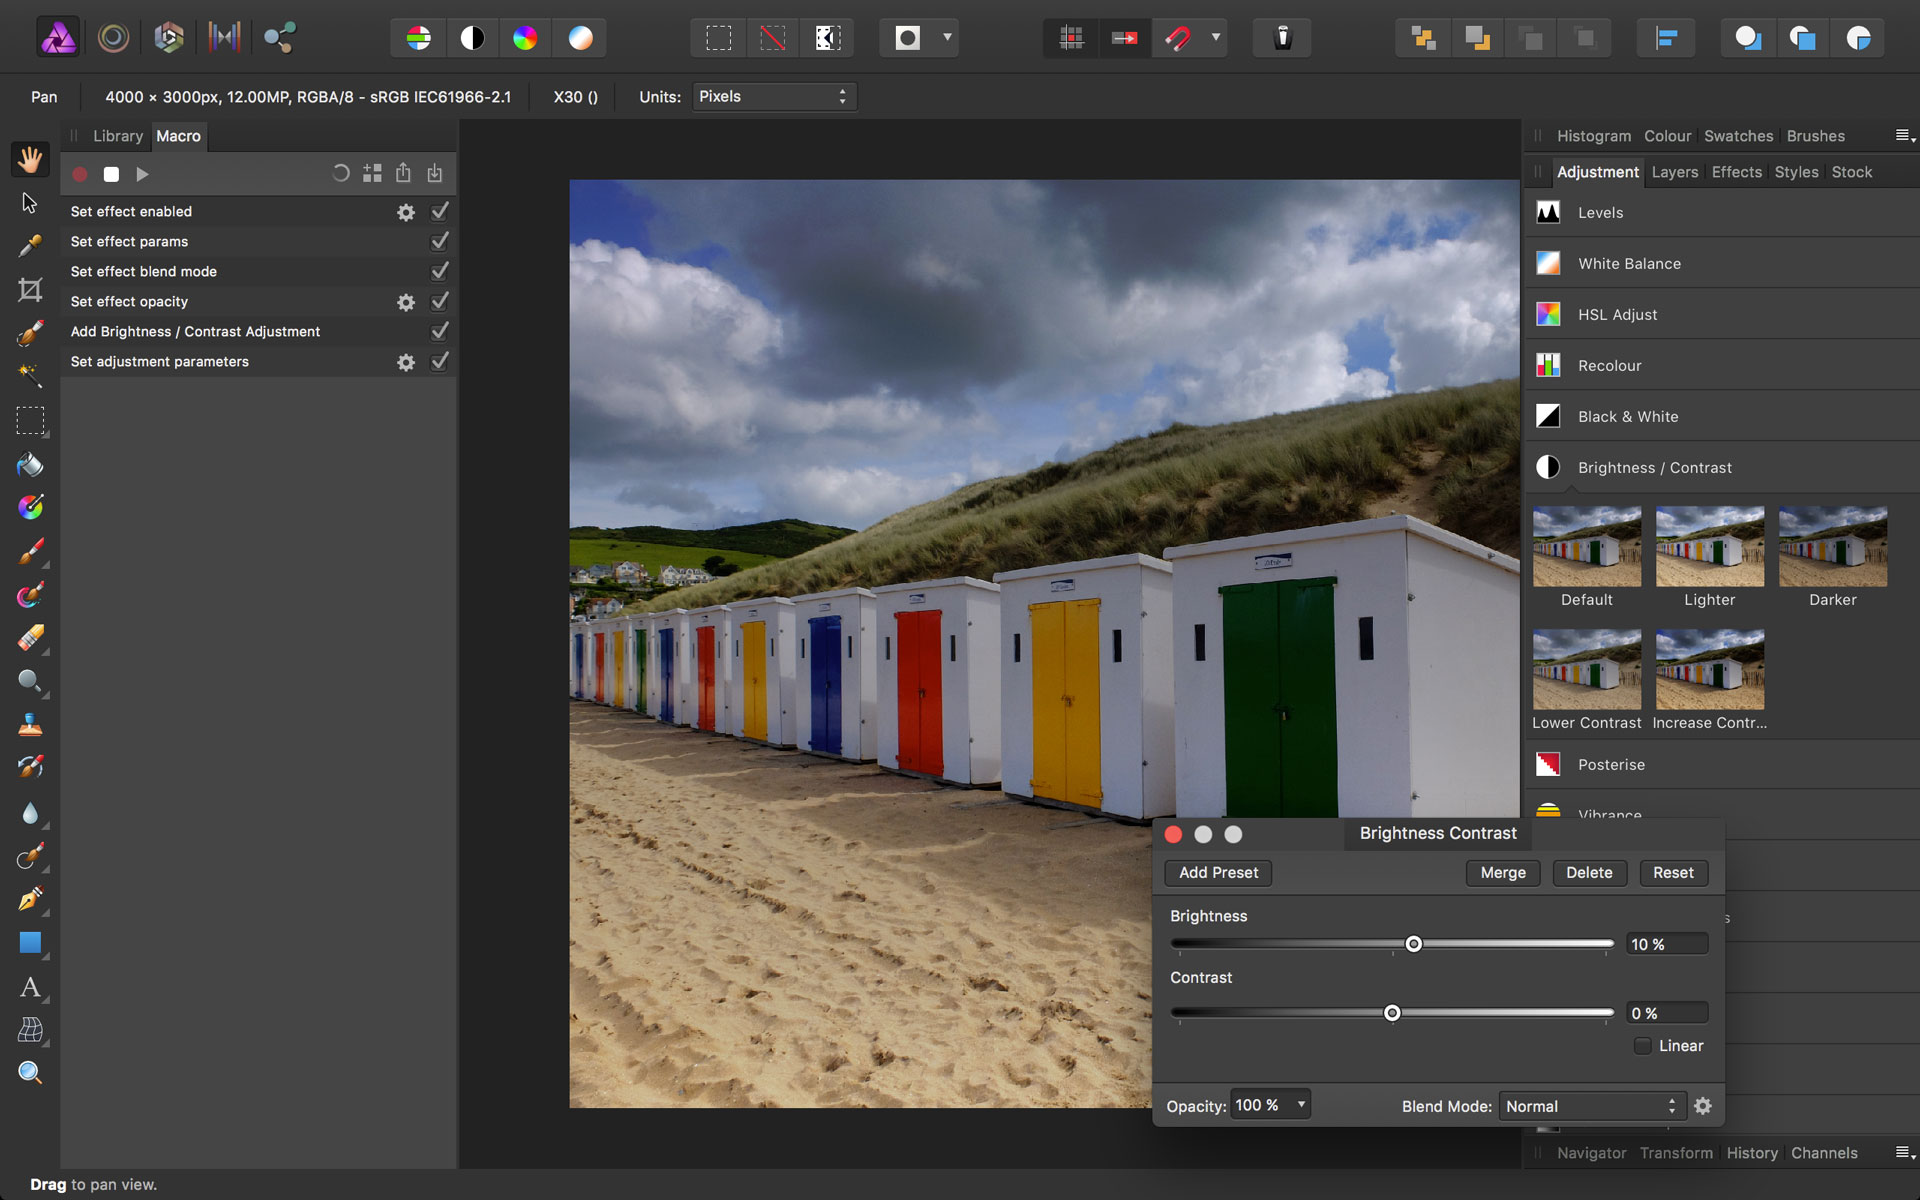 How to record and play back Macros in Affinity Photo